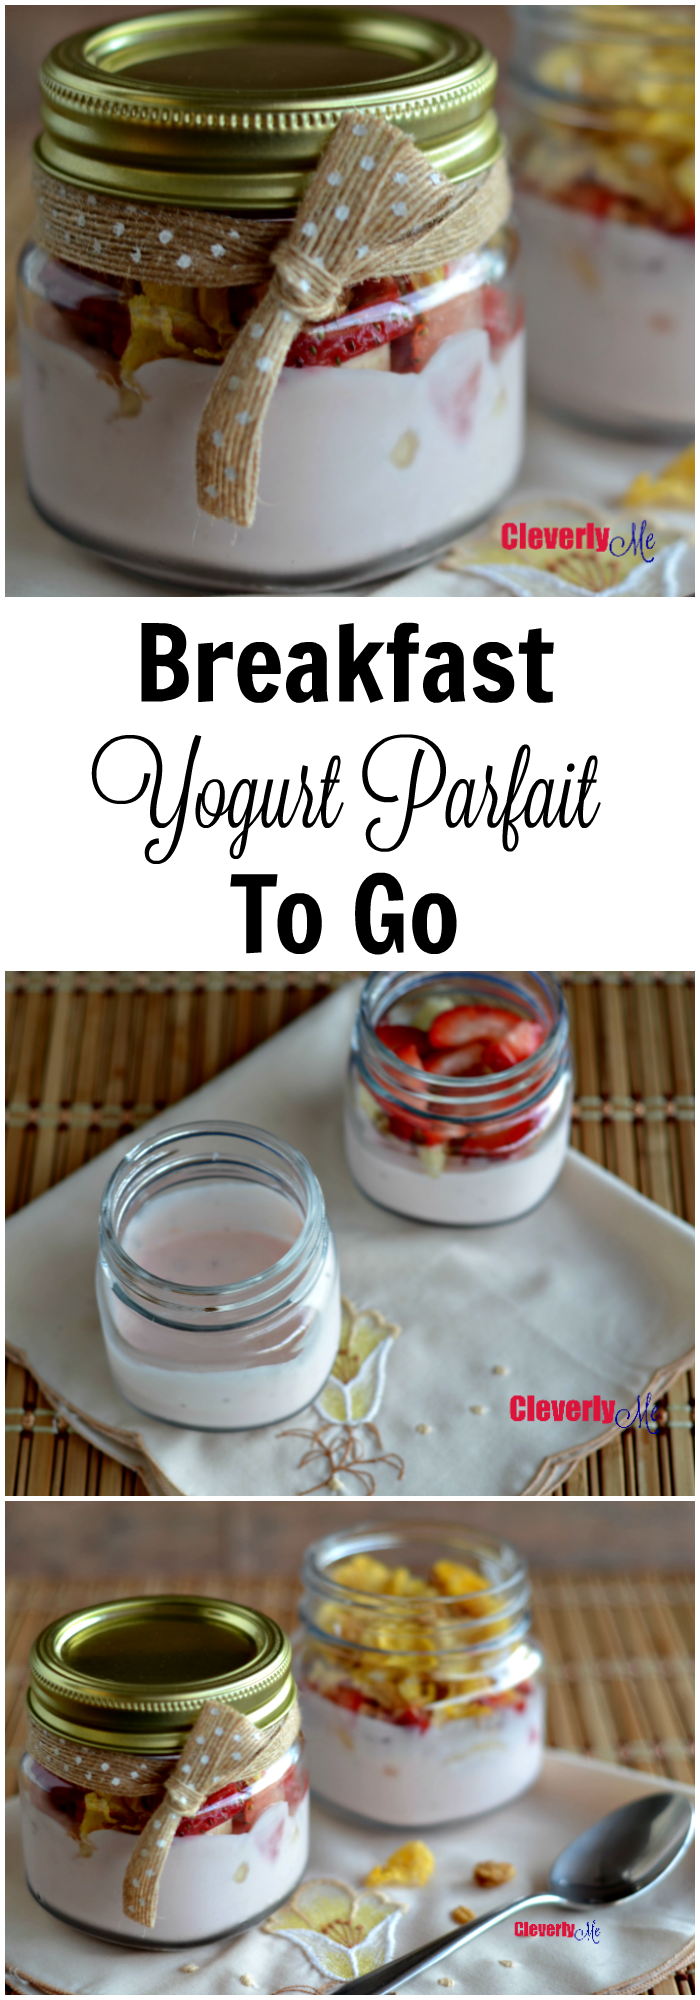 Start your day with this tasty, easy and portable Breakfast Yogurt Parfait To Go recipe. Get the recipe at CleverlyMe.com